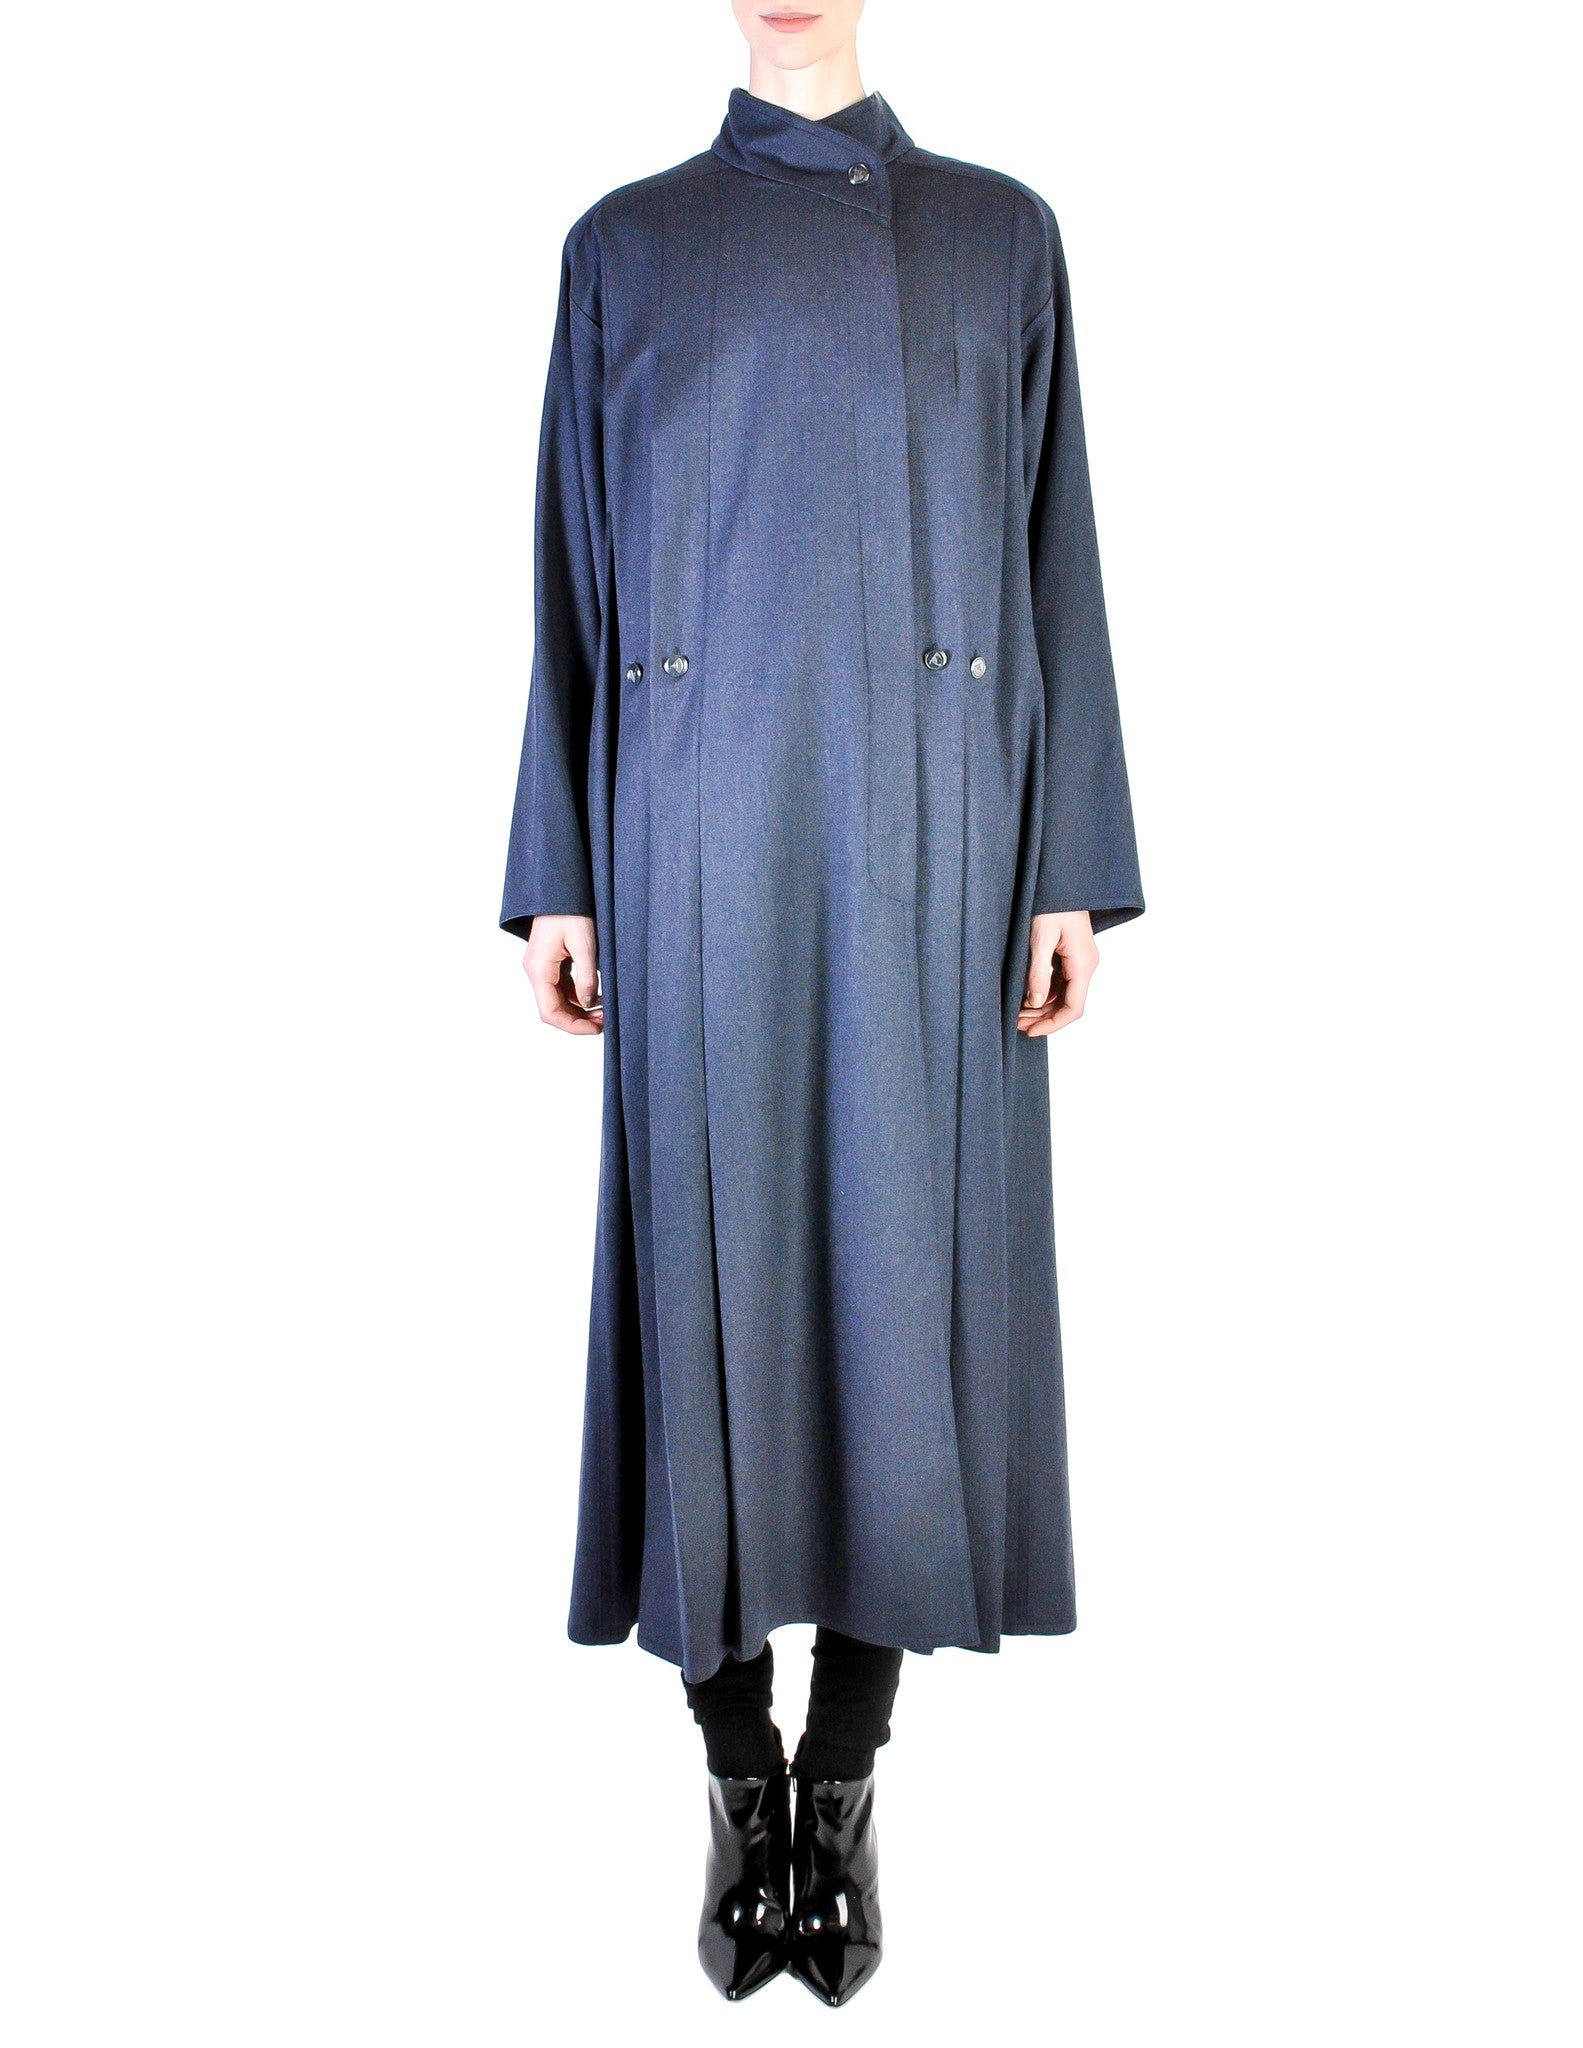 Karl Lagerfeld Vintage Blue Wool Pleated Panel Coat - Amarcord Vintage Fashion  - 1